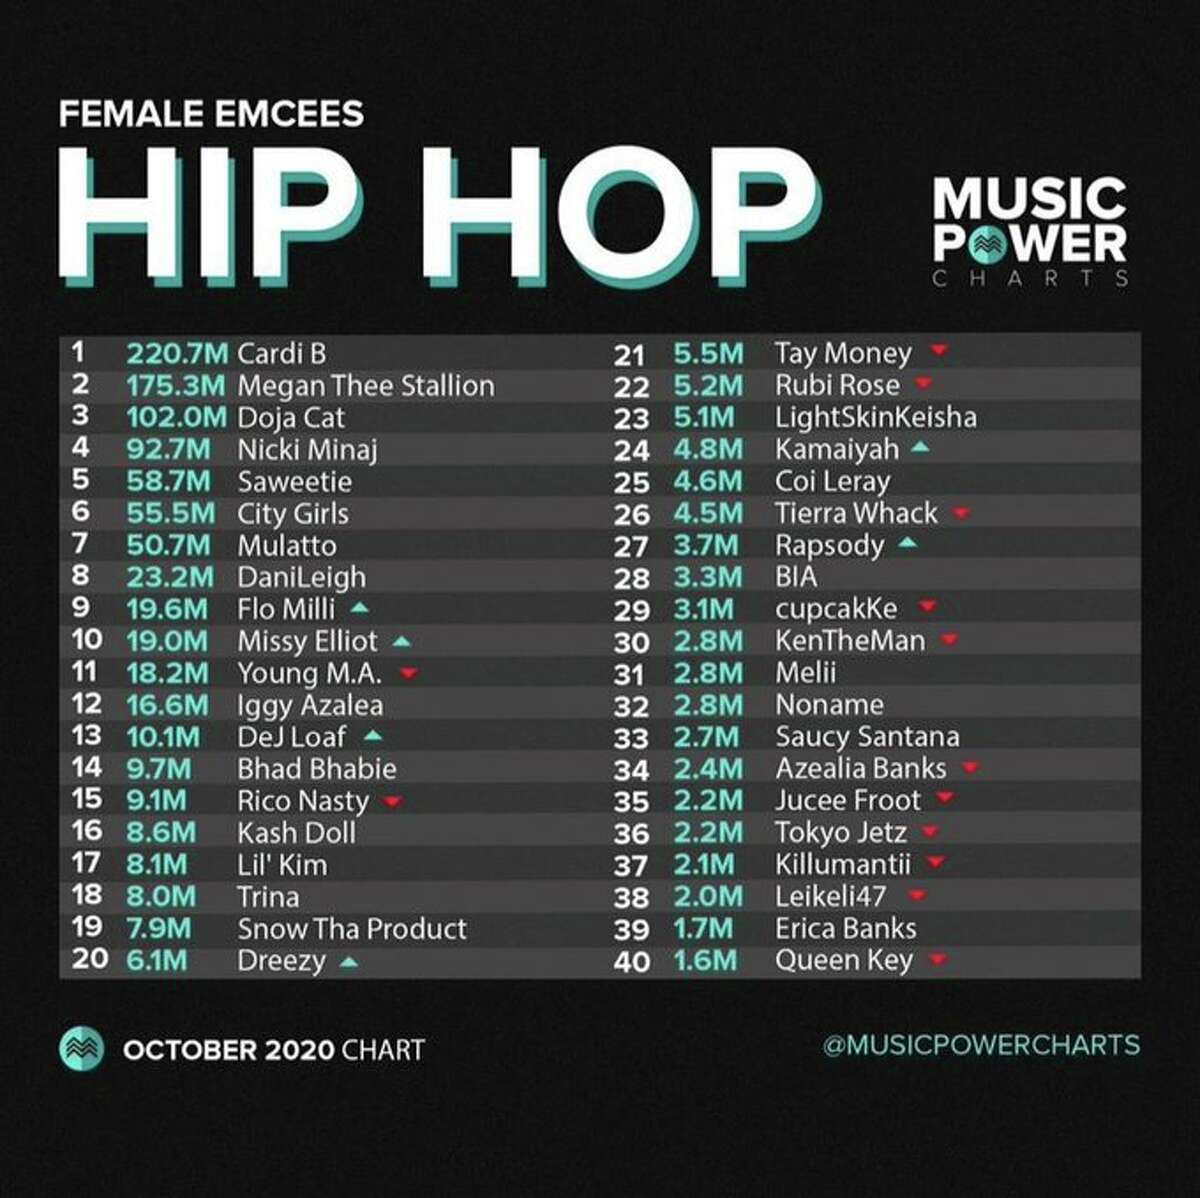 October 2020 Music Power Charts Top 40 Female emcees